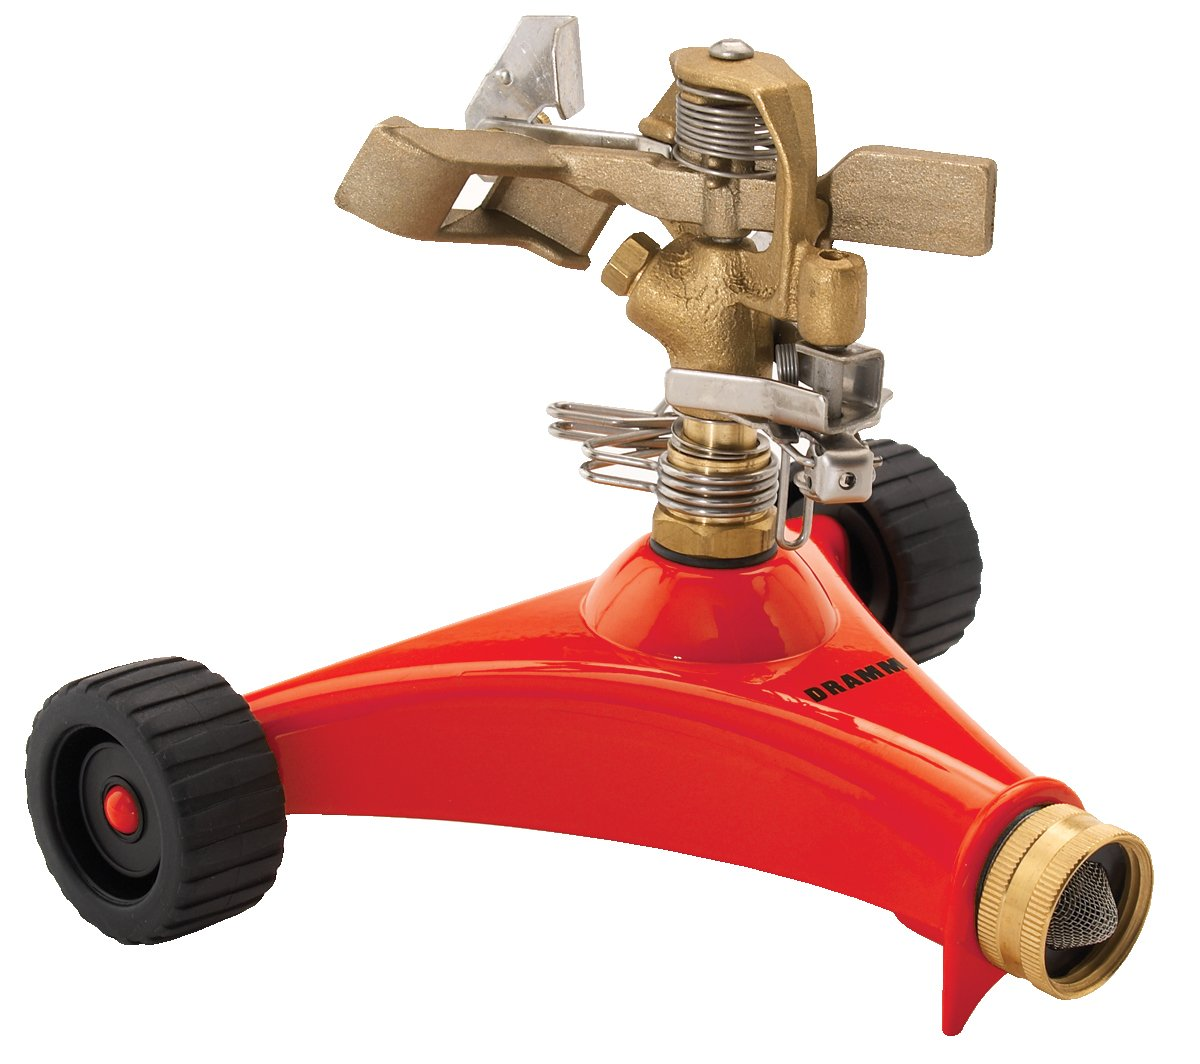 Amazon.com : Dramm 15031 ColorStorm Premium Impulse Sprinkler With Heavy  Duty Metal Wheeled Base, Red : Rotary Lawn And Garden Sprinklers : Garden U0026  Outdoor